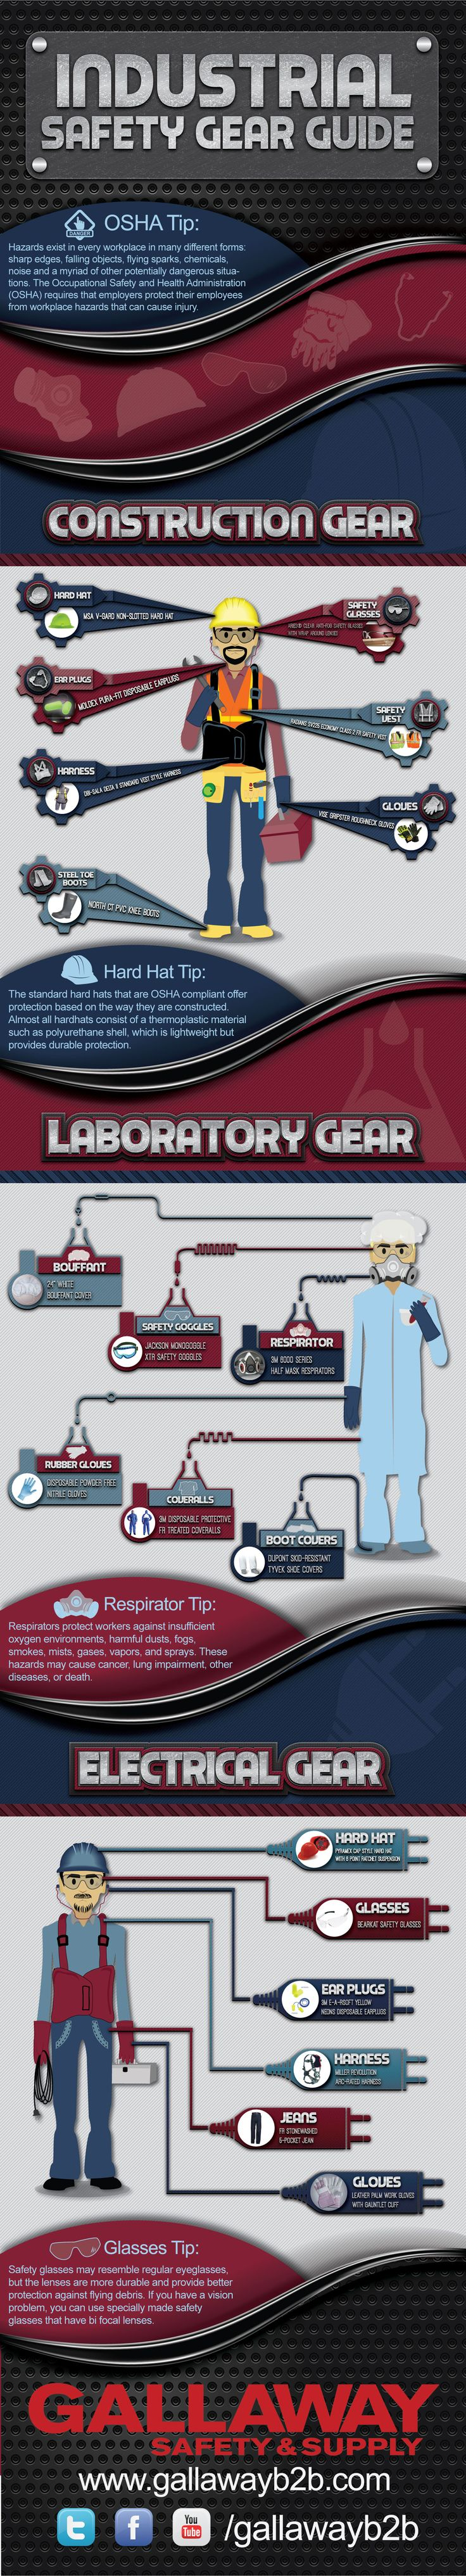 Industrial Safety Guide #Infographic @Keri Guertin